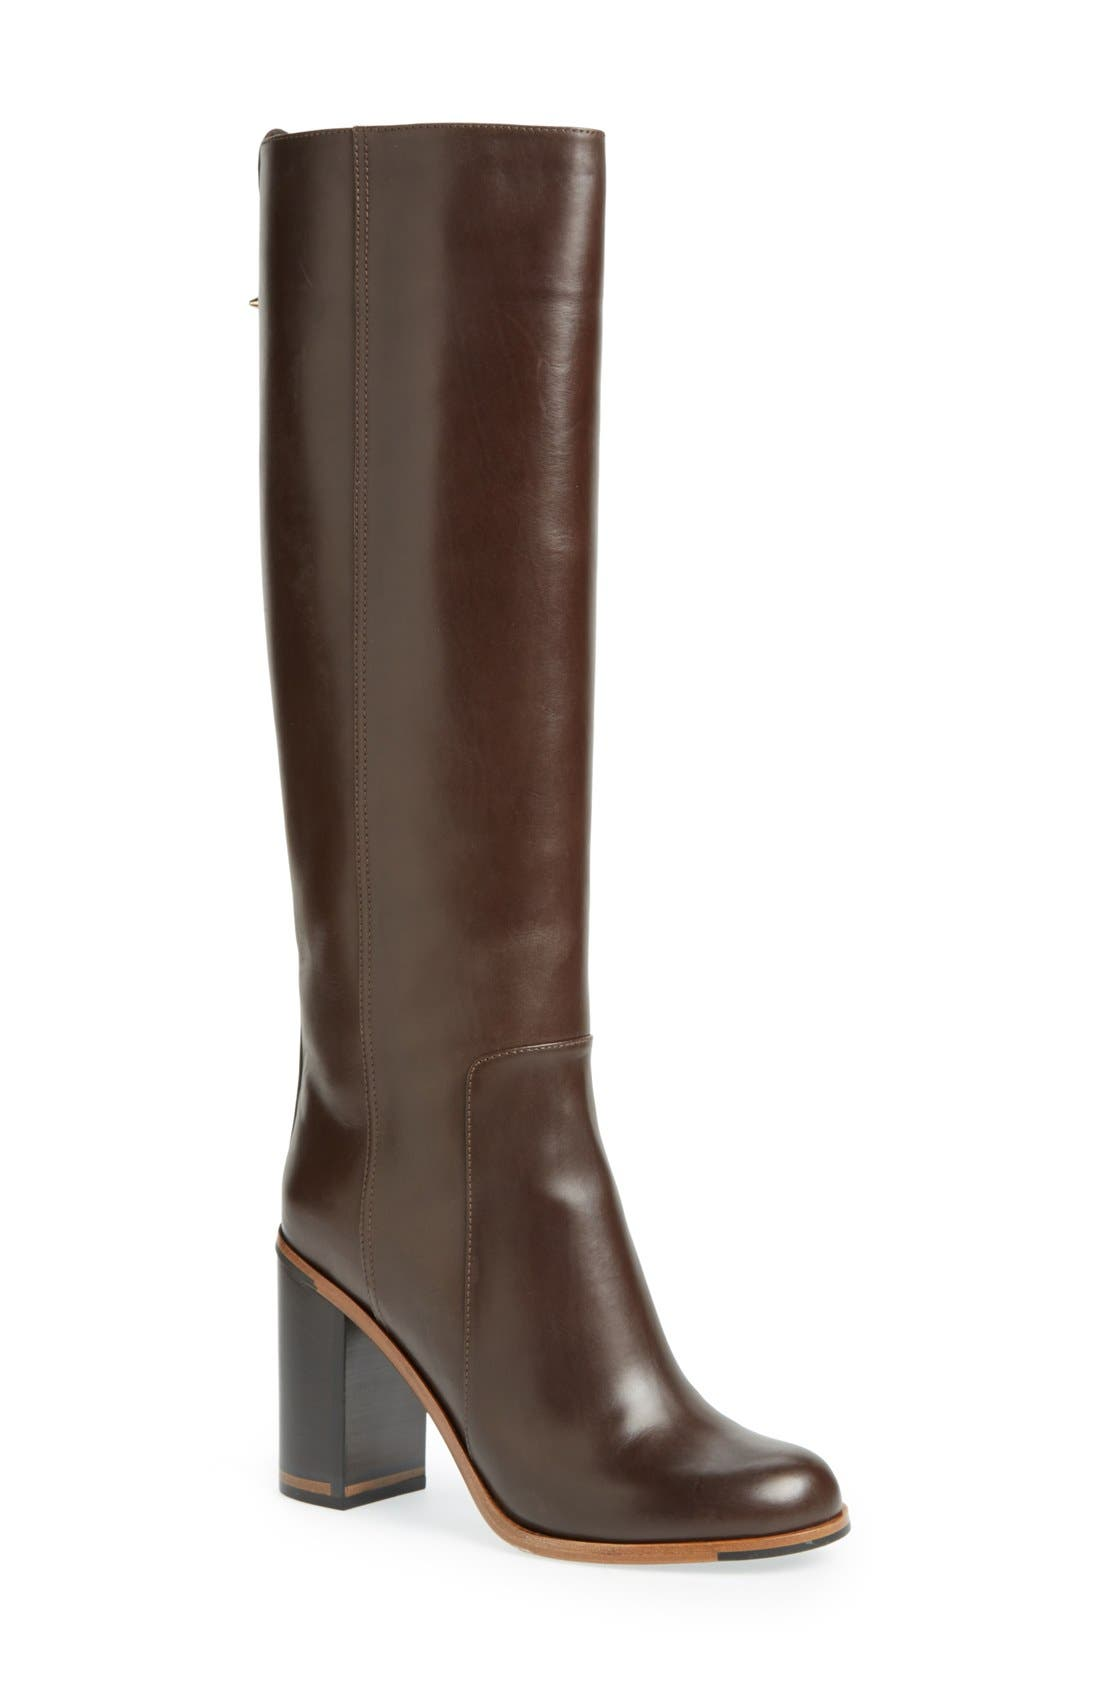 Alternate Image 1 Selected - Fendi 'Goldmine' Knee High Boot (Women)